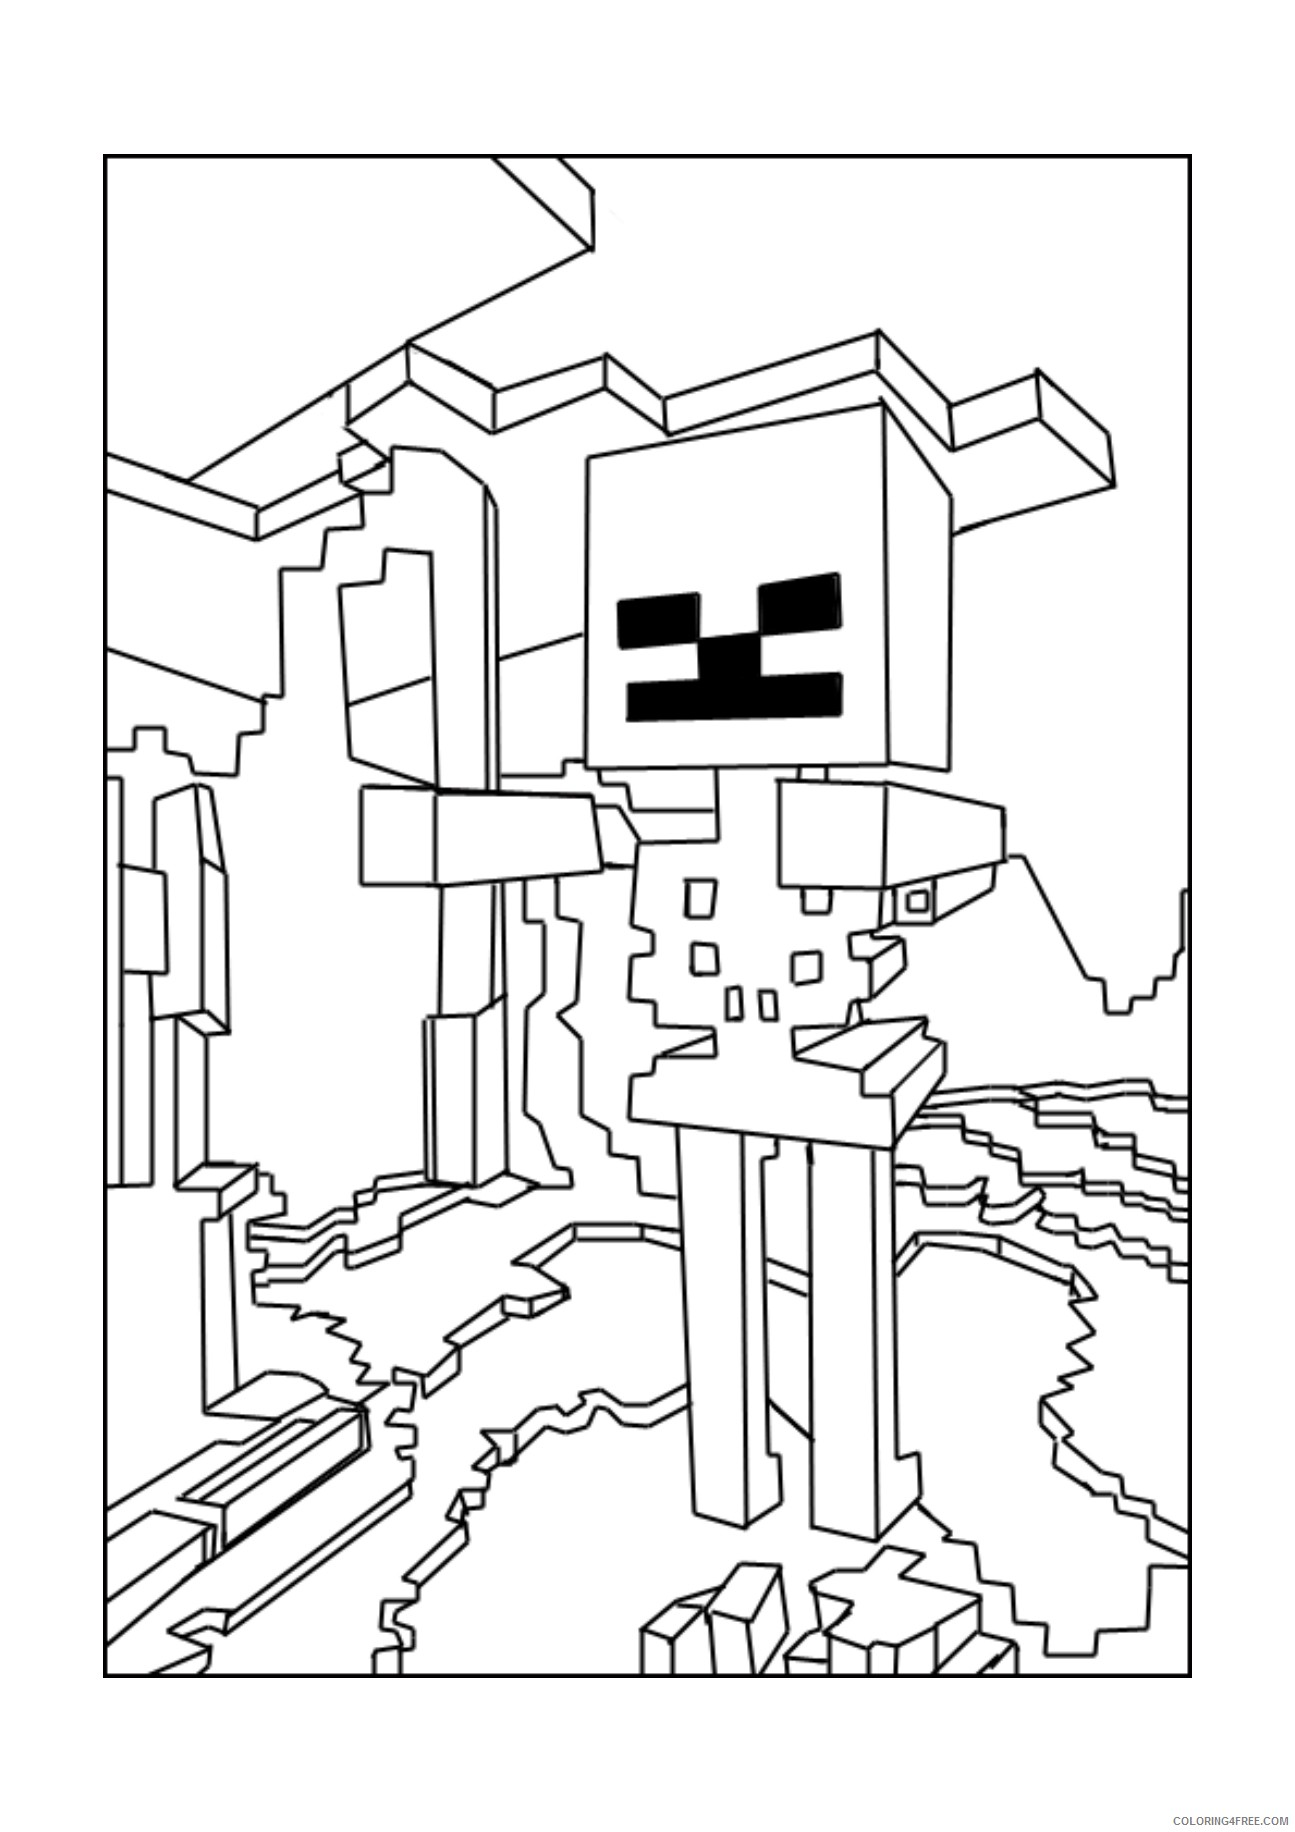 easy minecraft coloring pages 30 minecraft printable coloring pages in 2020 minecraft easy pages coloring minecraft